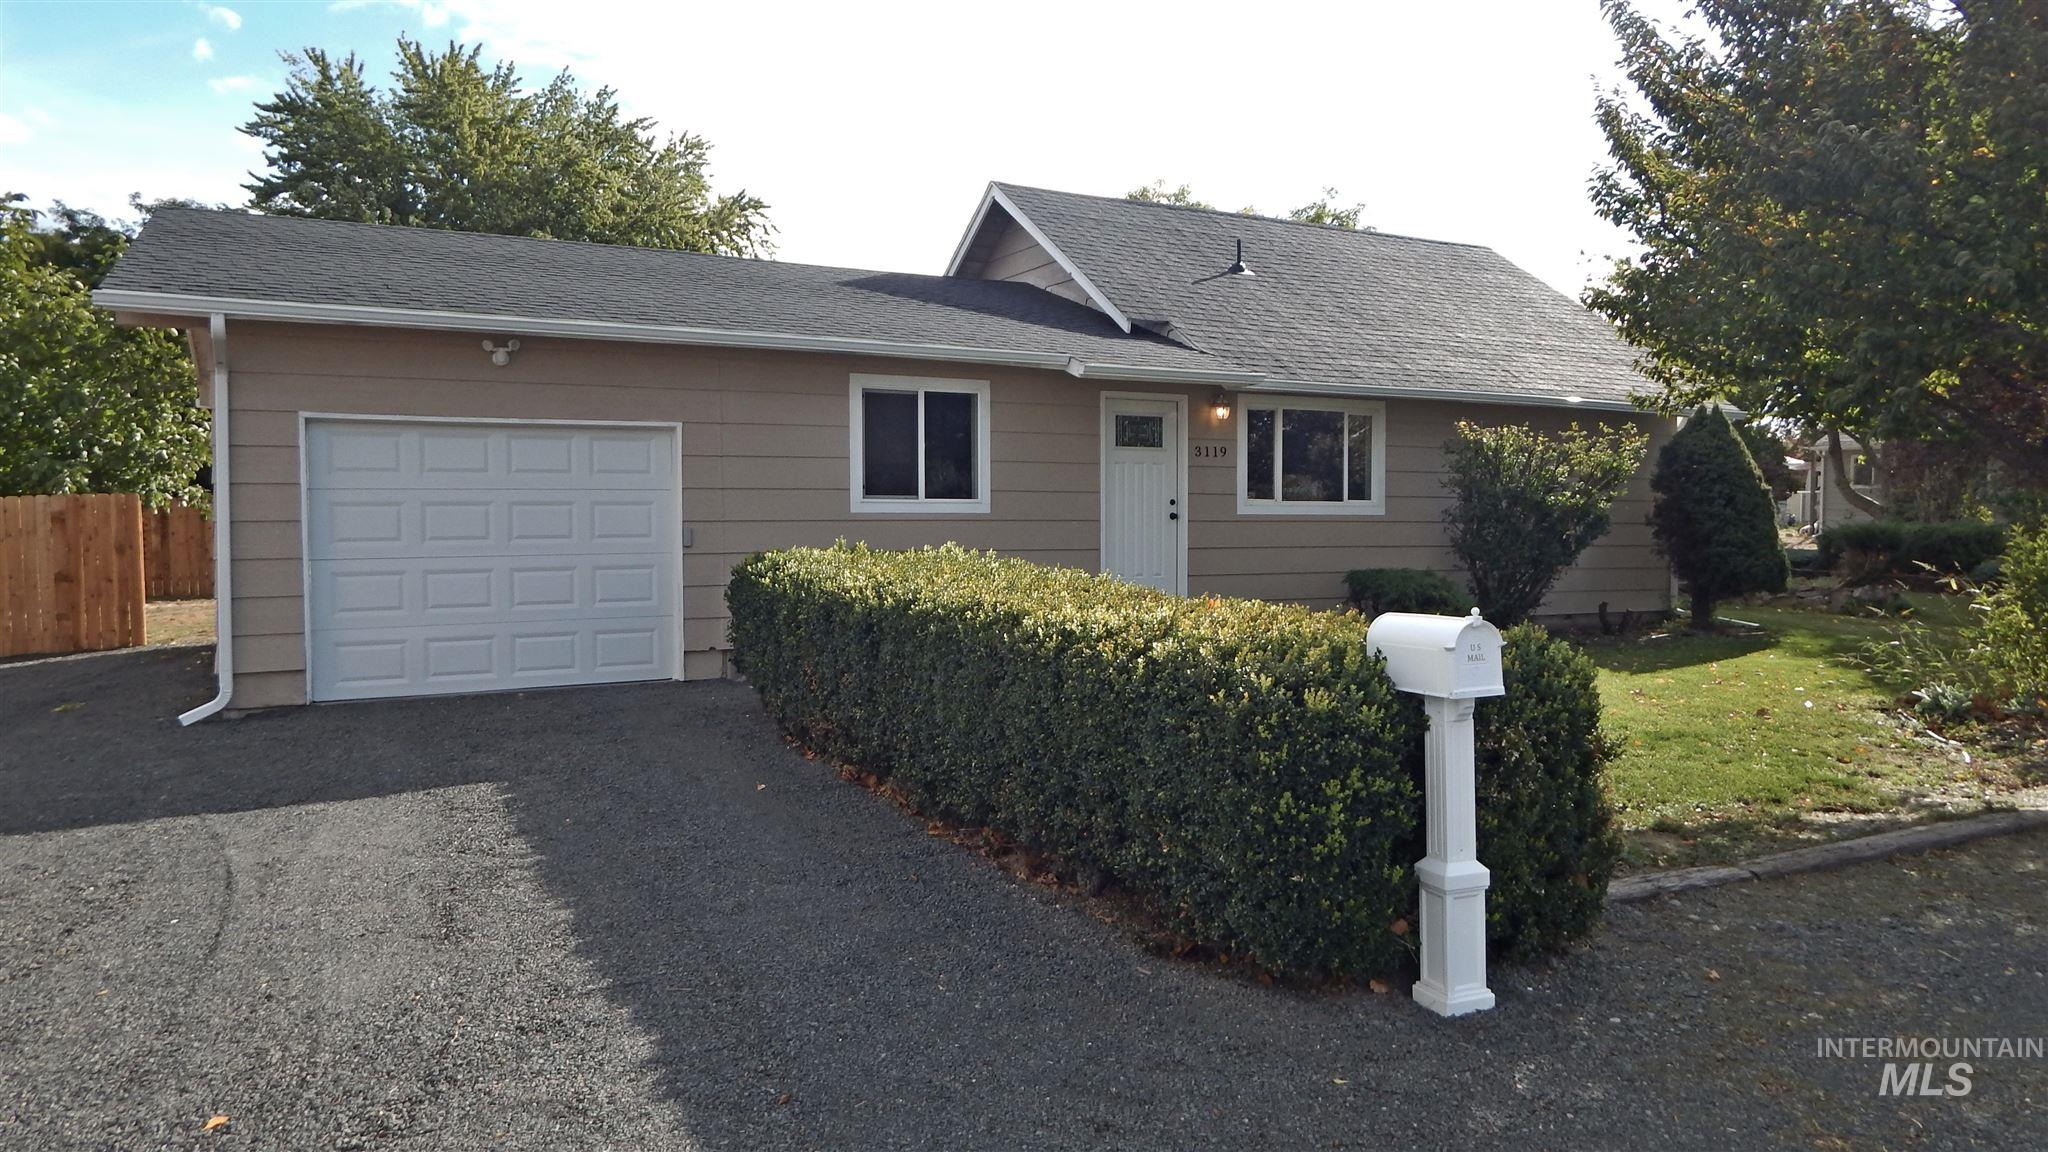 3119 9th St., Lewiston, Idaho 83501, 3 Bedrooms, 1 Bathroom, Residential For Sale, Price $229,000, 98784488